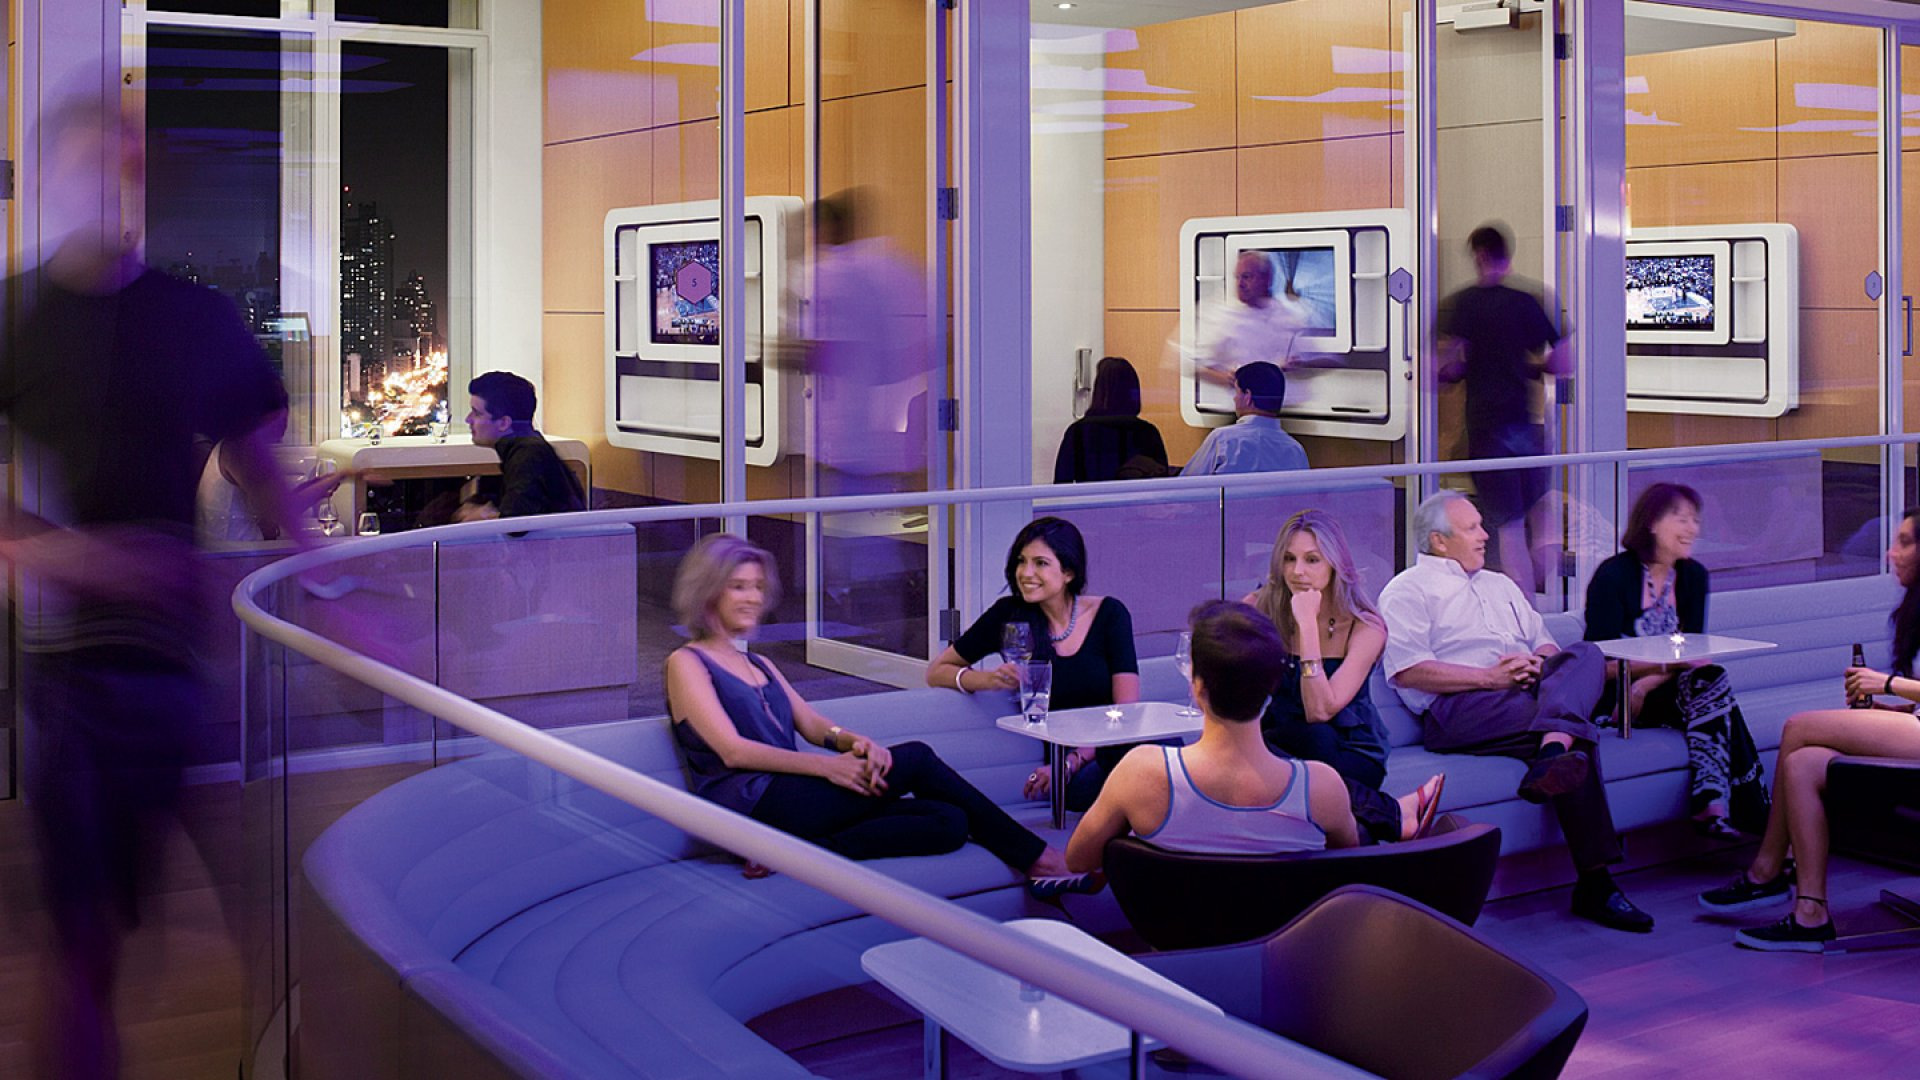 <b>Let's Get Together</b> Yotel features small workplaces with a hip vibe.